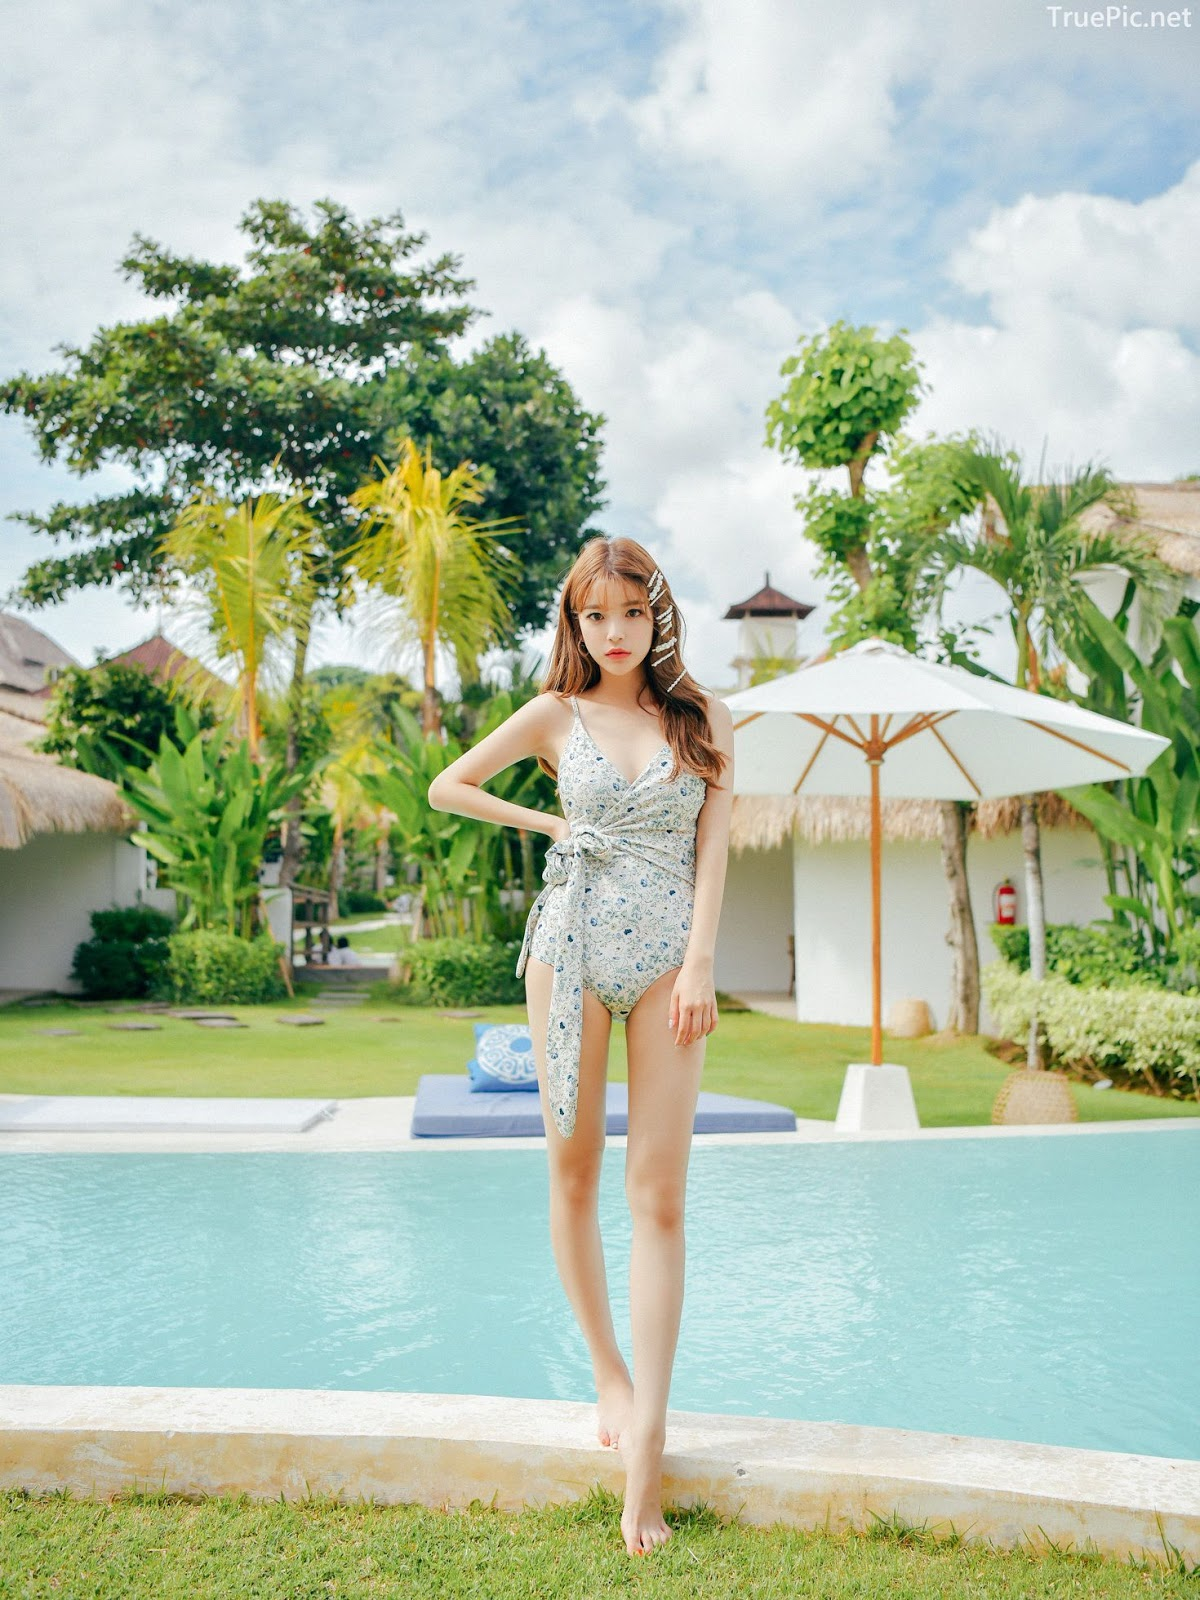 Korean fashion model - Cha Yoo Jin - Alium Ivory Monokini - Picture 4